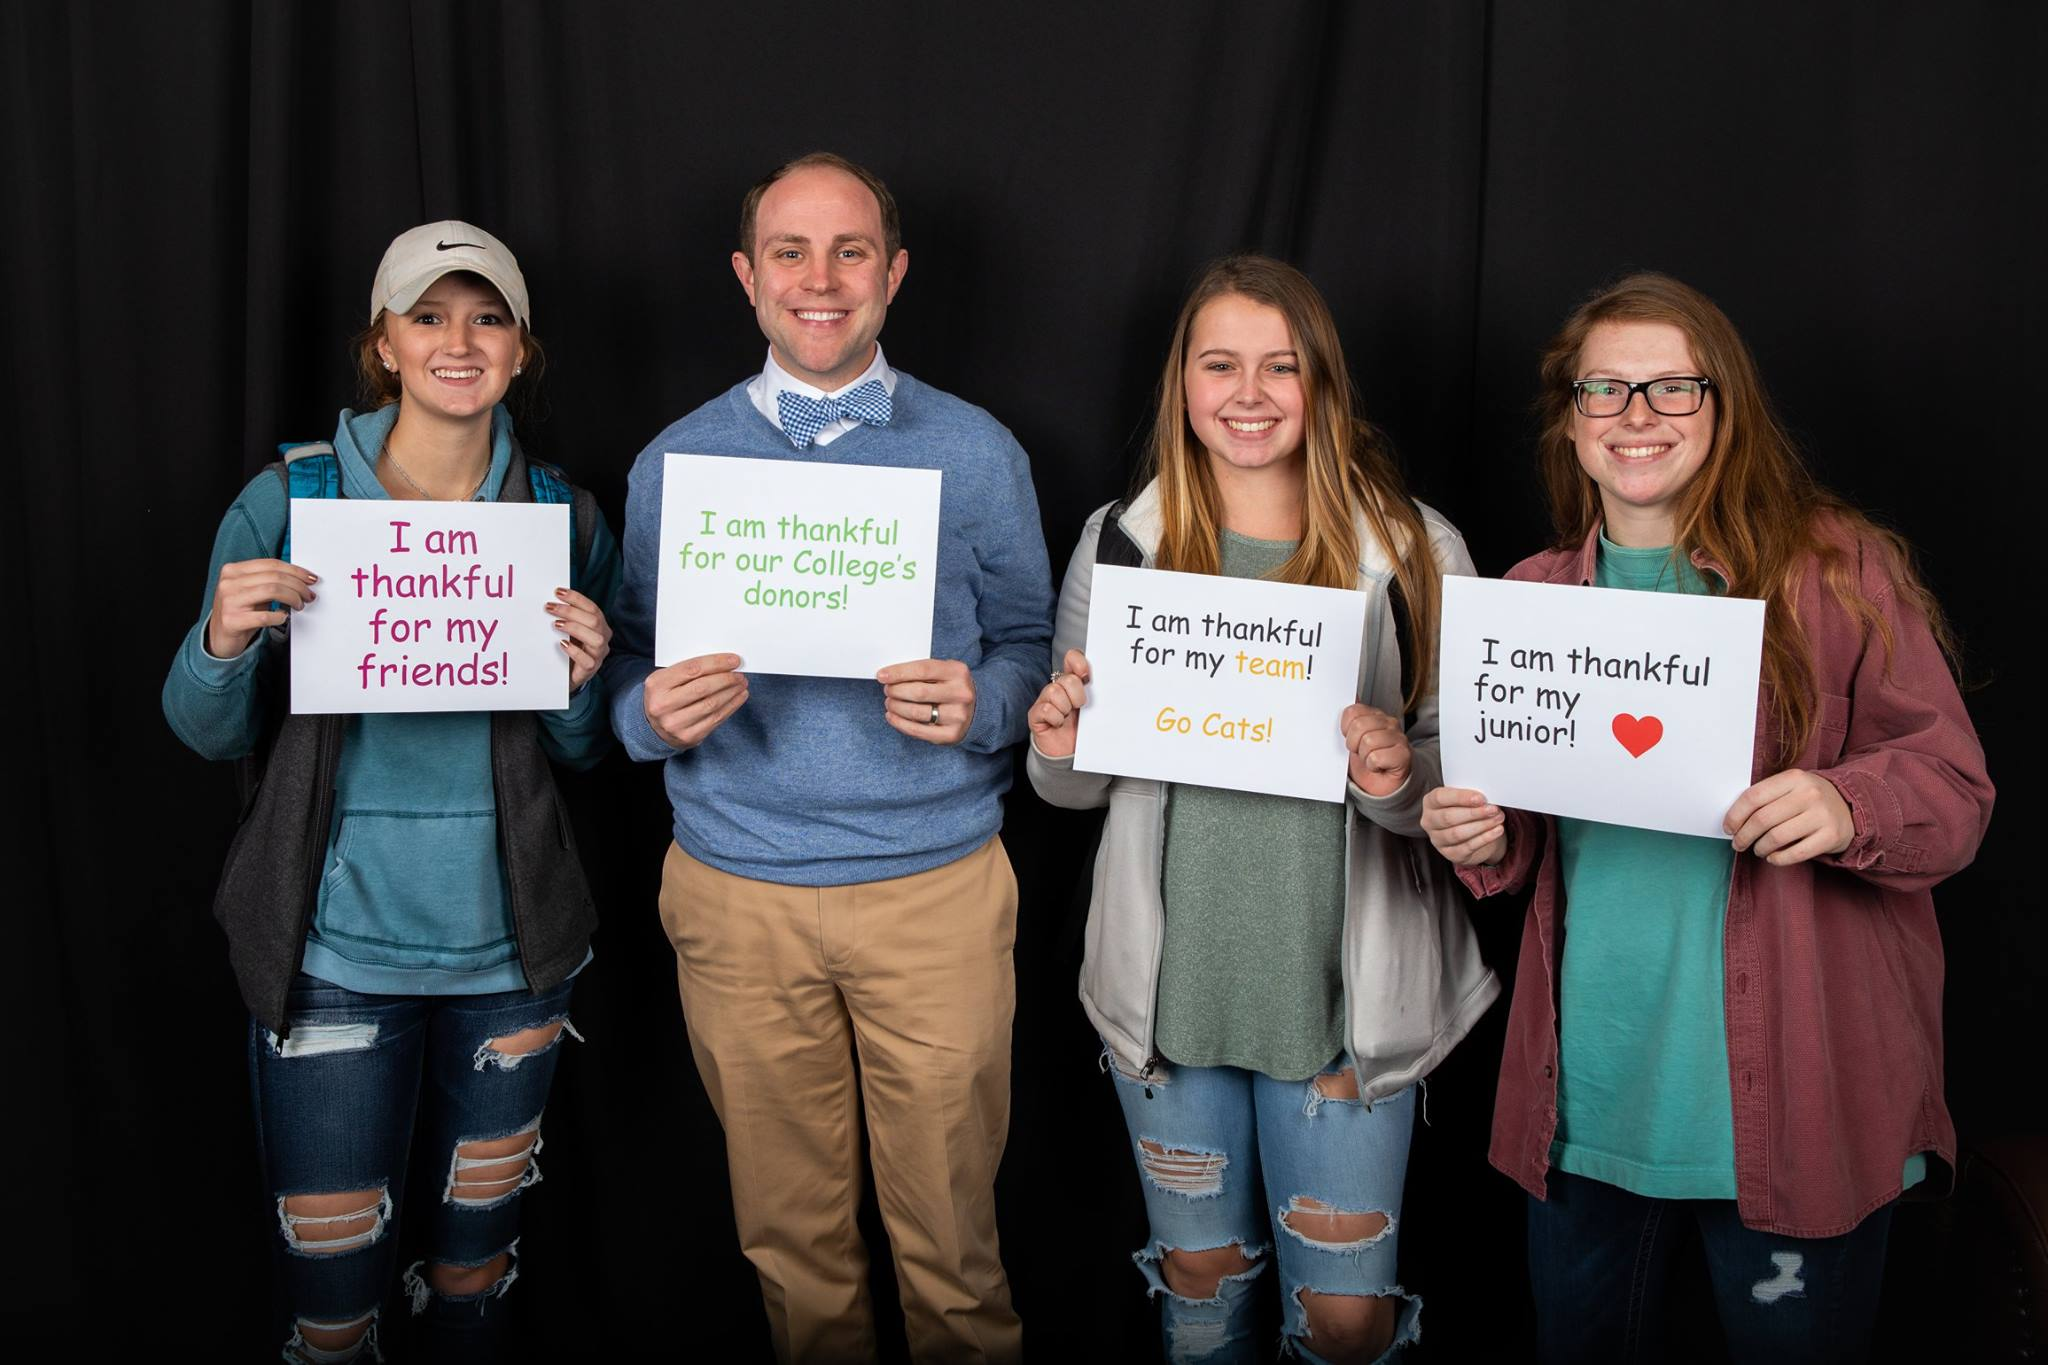 Wes Fugate, vice president for student affairs, and Randolph students express their gratitude at the Giving Tuesday photo booth